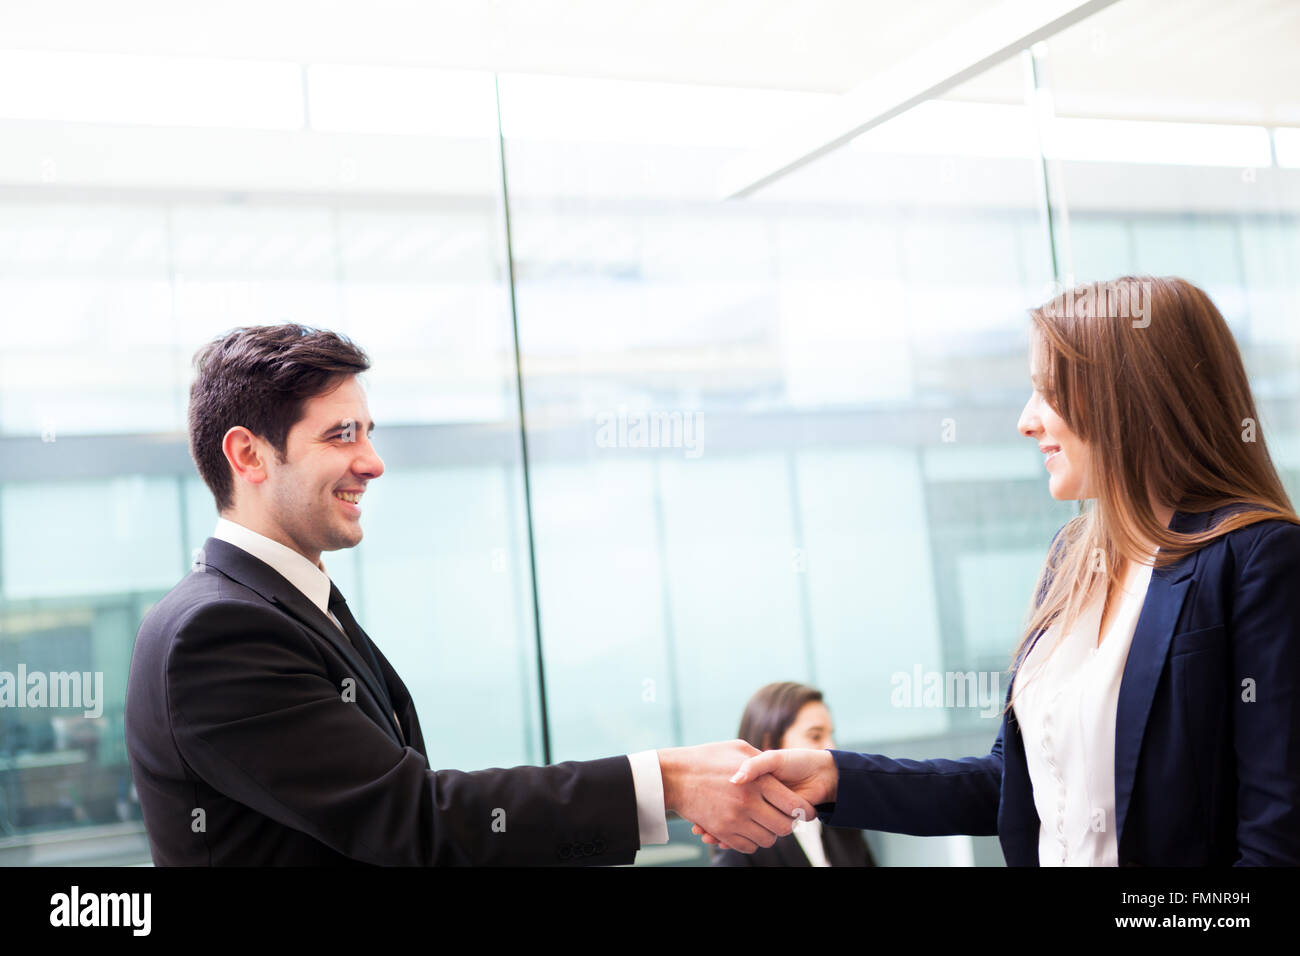 business handshake at modern office with bussiness people on stock